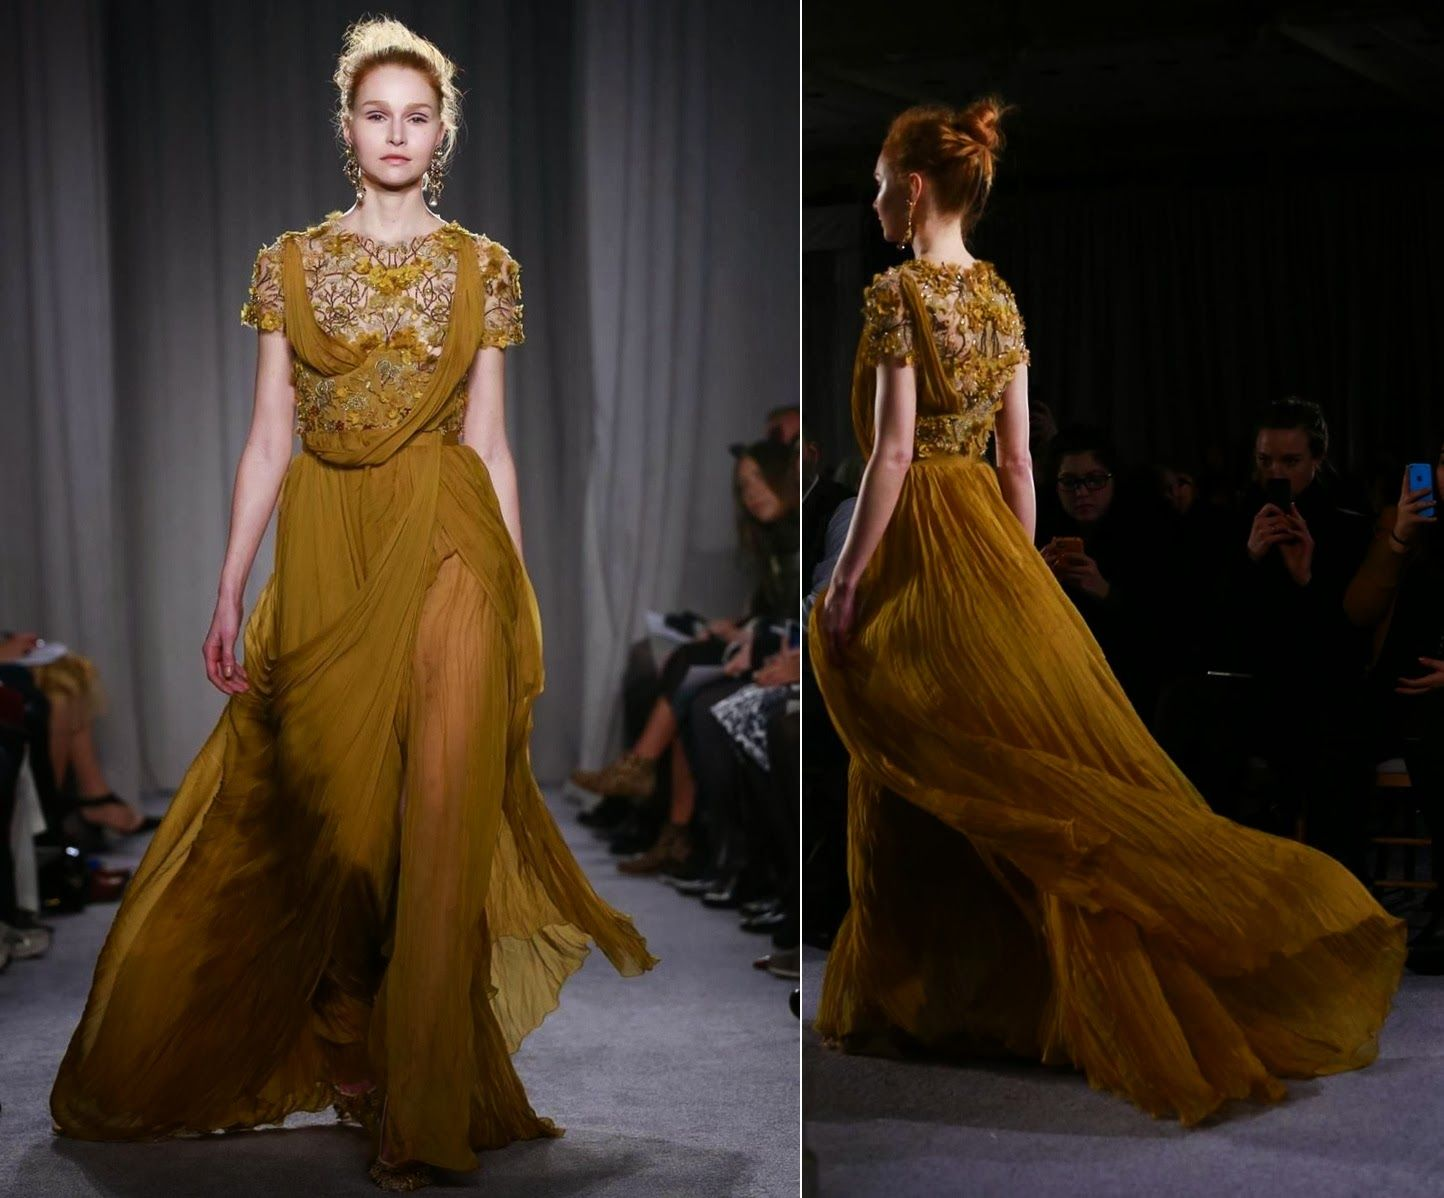 Mis Queridas Fashionistas: Marchesa Ready To Wear Fall/Winter 2014 -New York Fashion Week